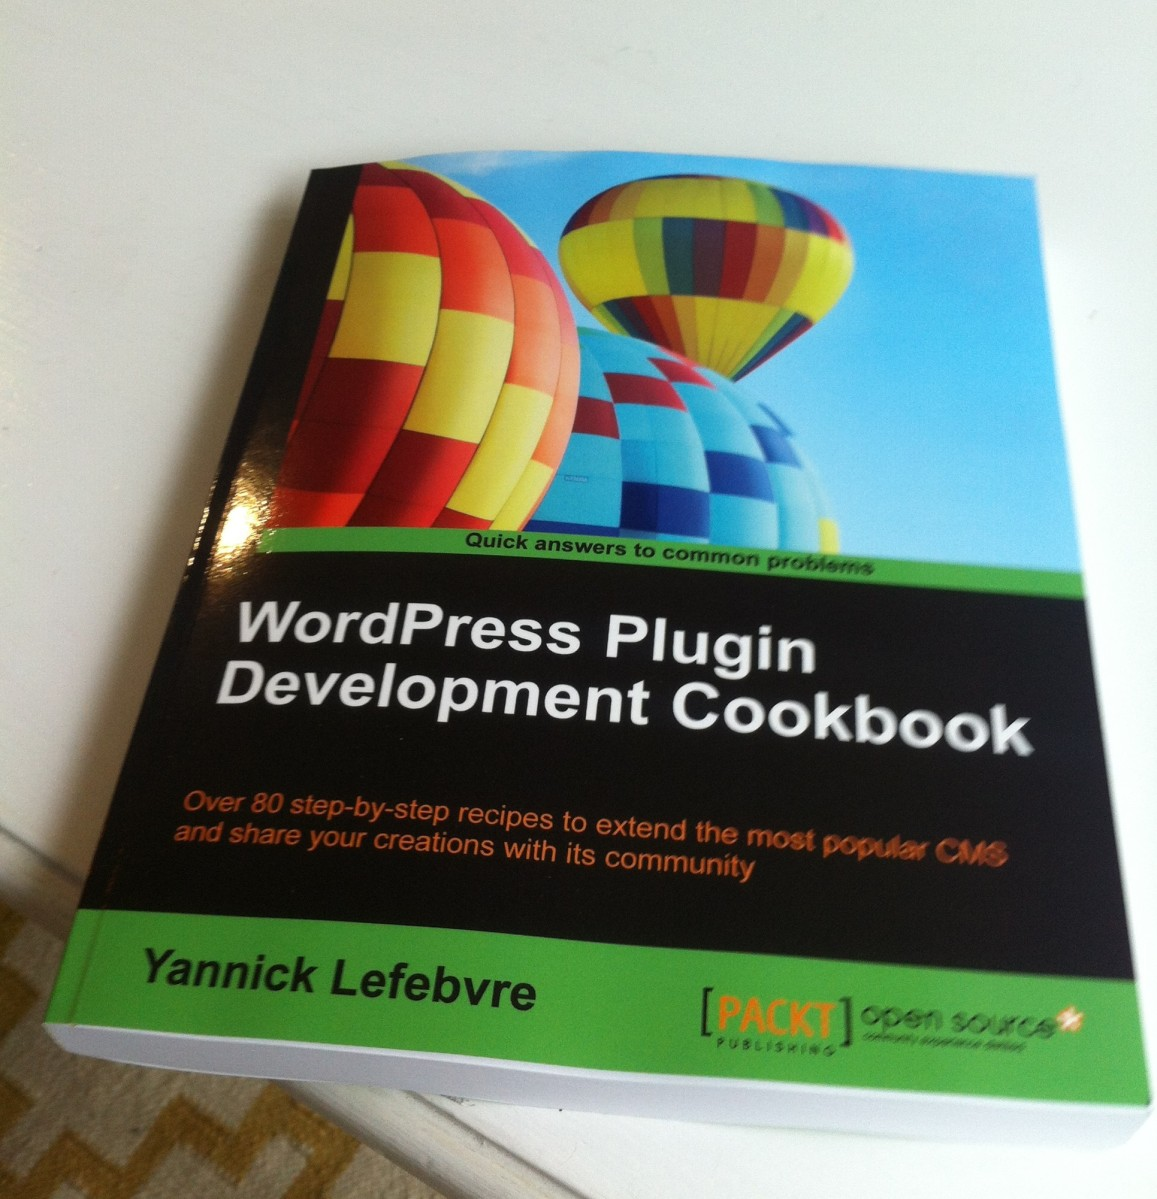 WordPress Plugin Development Cookbook Book Cover